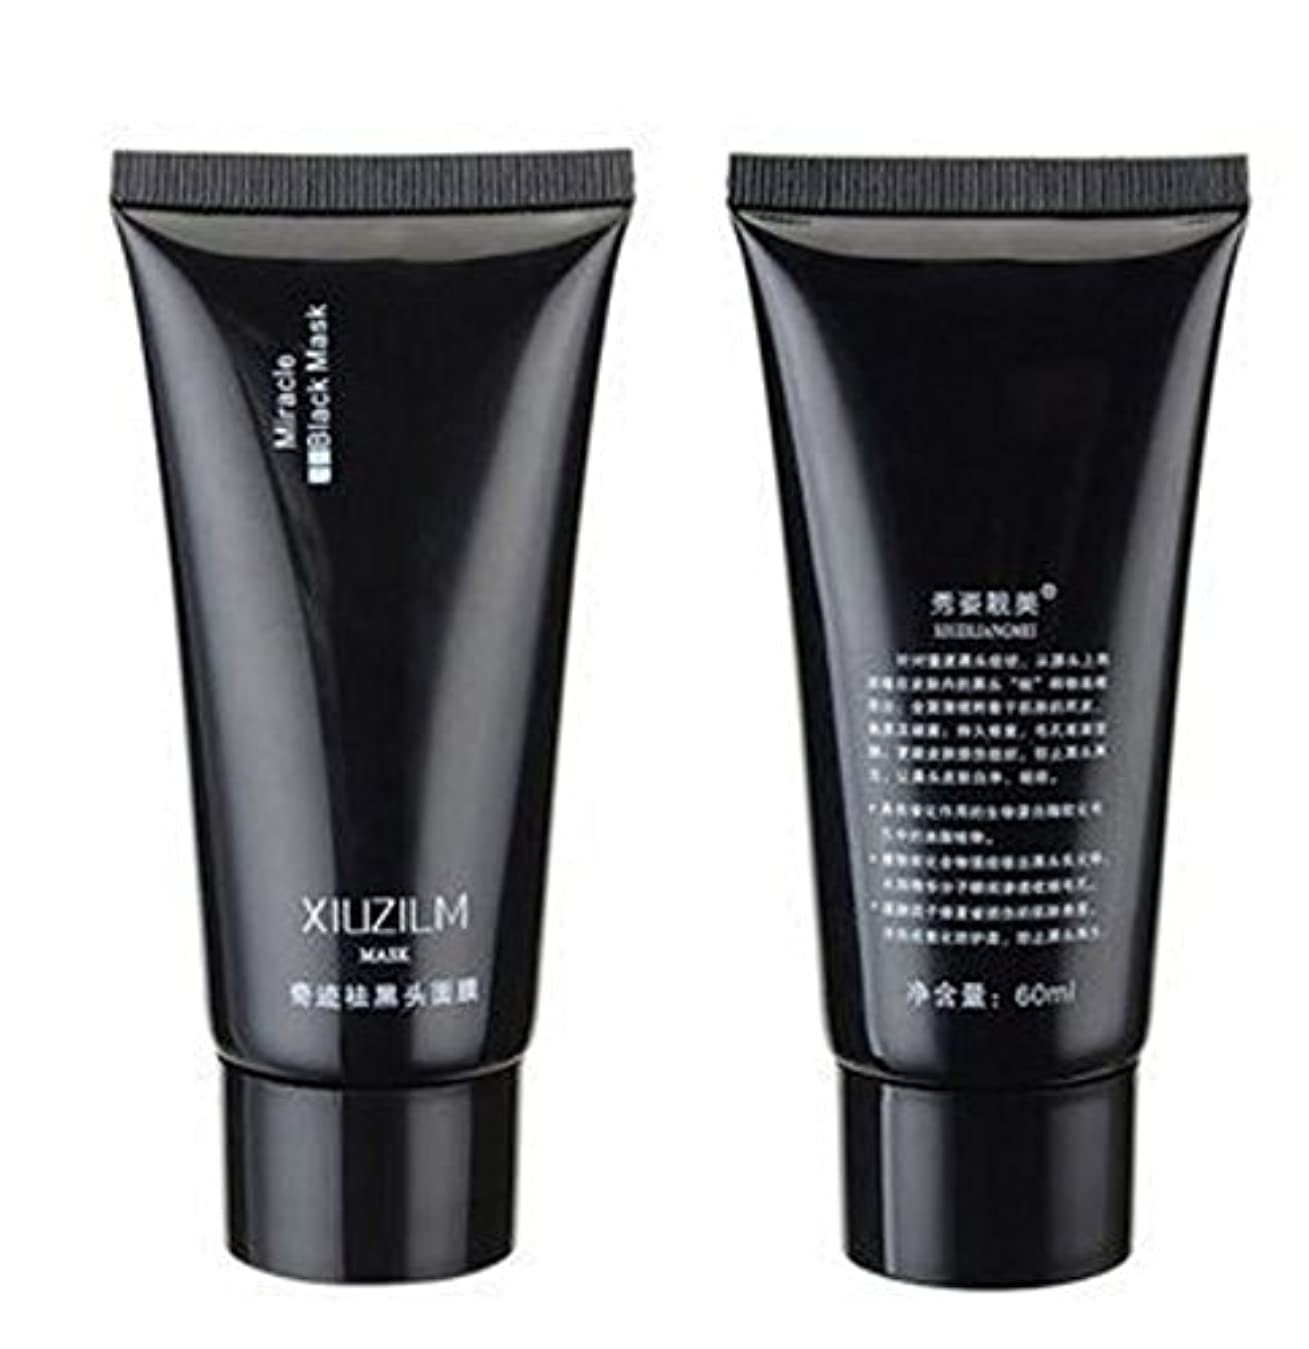 崖おしゃれじゃないますますXIUZILM Blackheadマスク泥鼻面ブラックClean Pore Peel Off Remover Deep Cleaner Purifying by saturday24